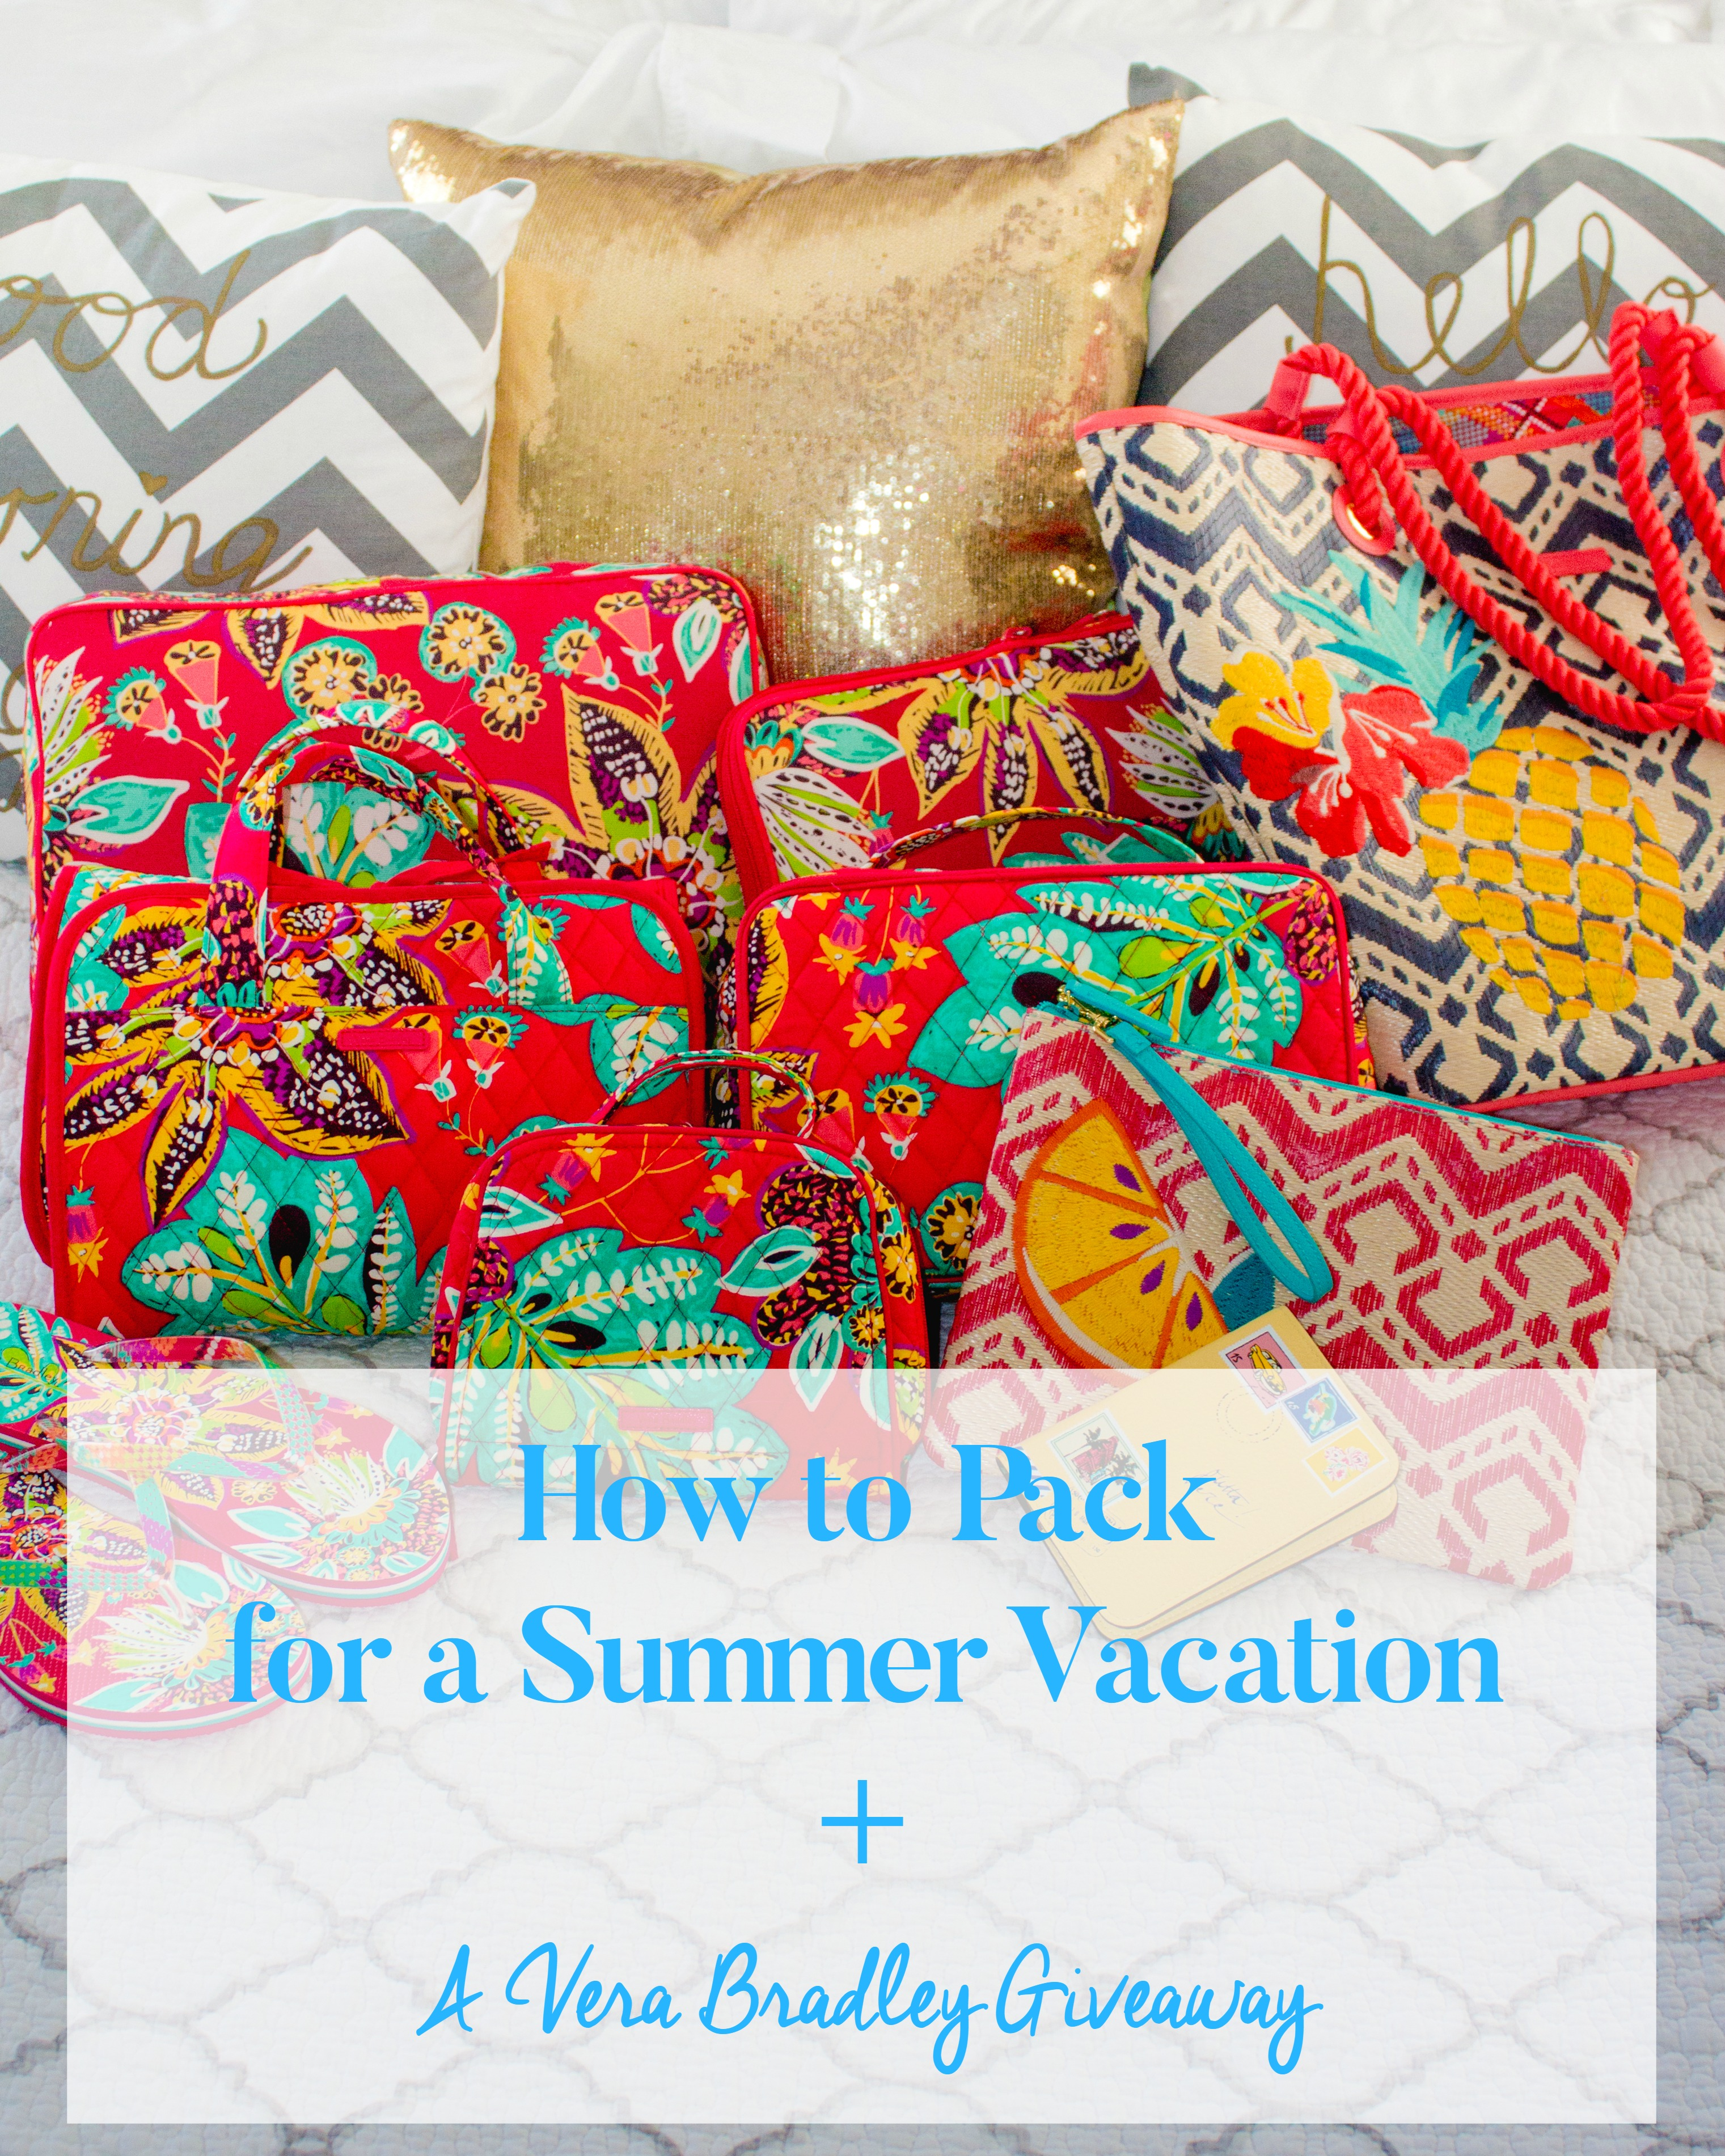 PACK SUMMER VACATION VERA BRADLEY